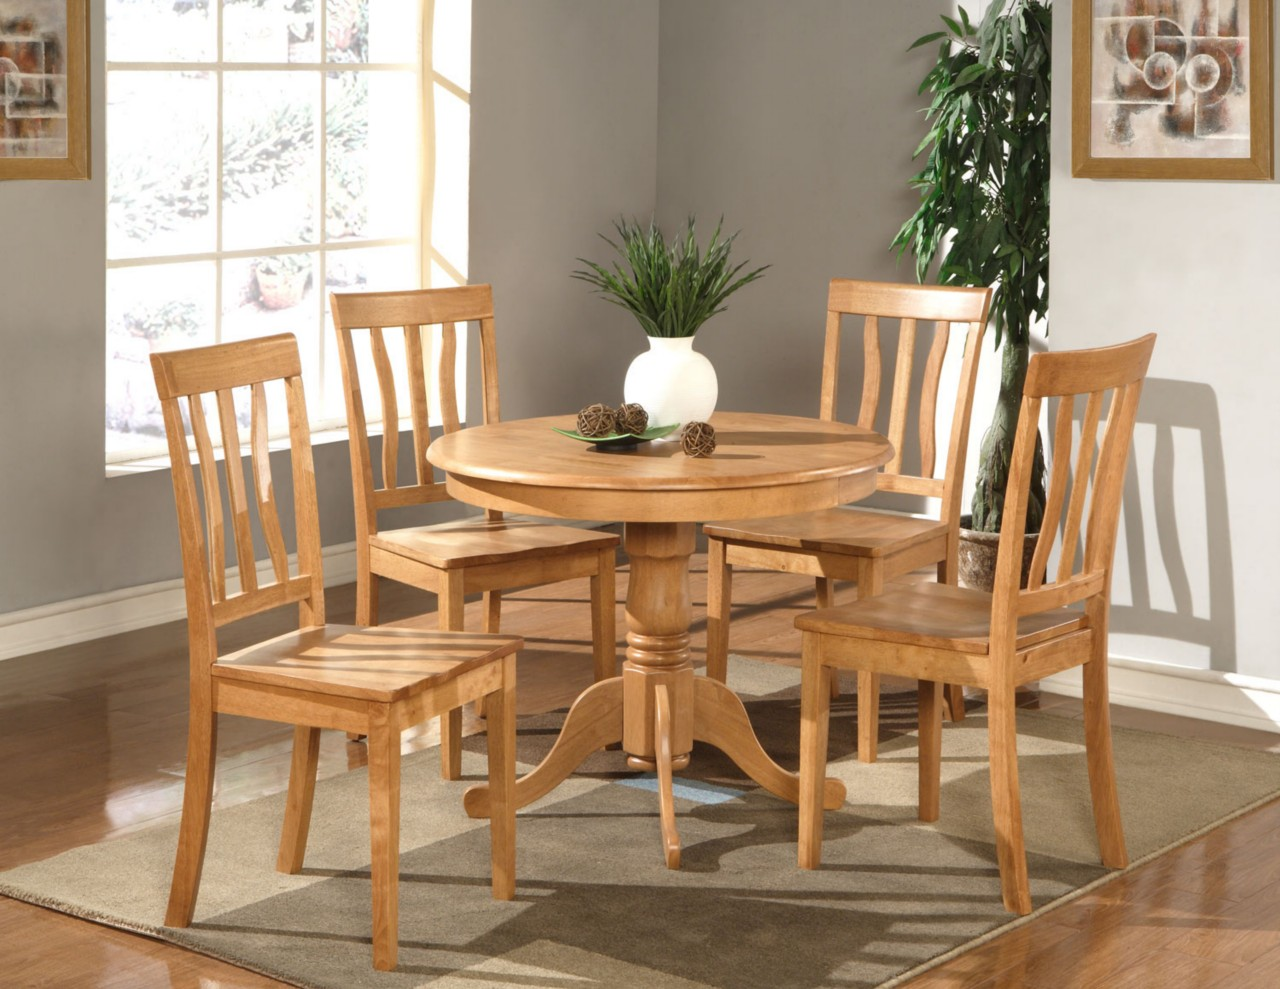 round wooden chair tommy bahama event 5 pc dinette kitchen table with 4 wood seat chairs